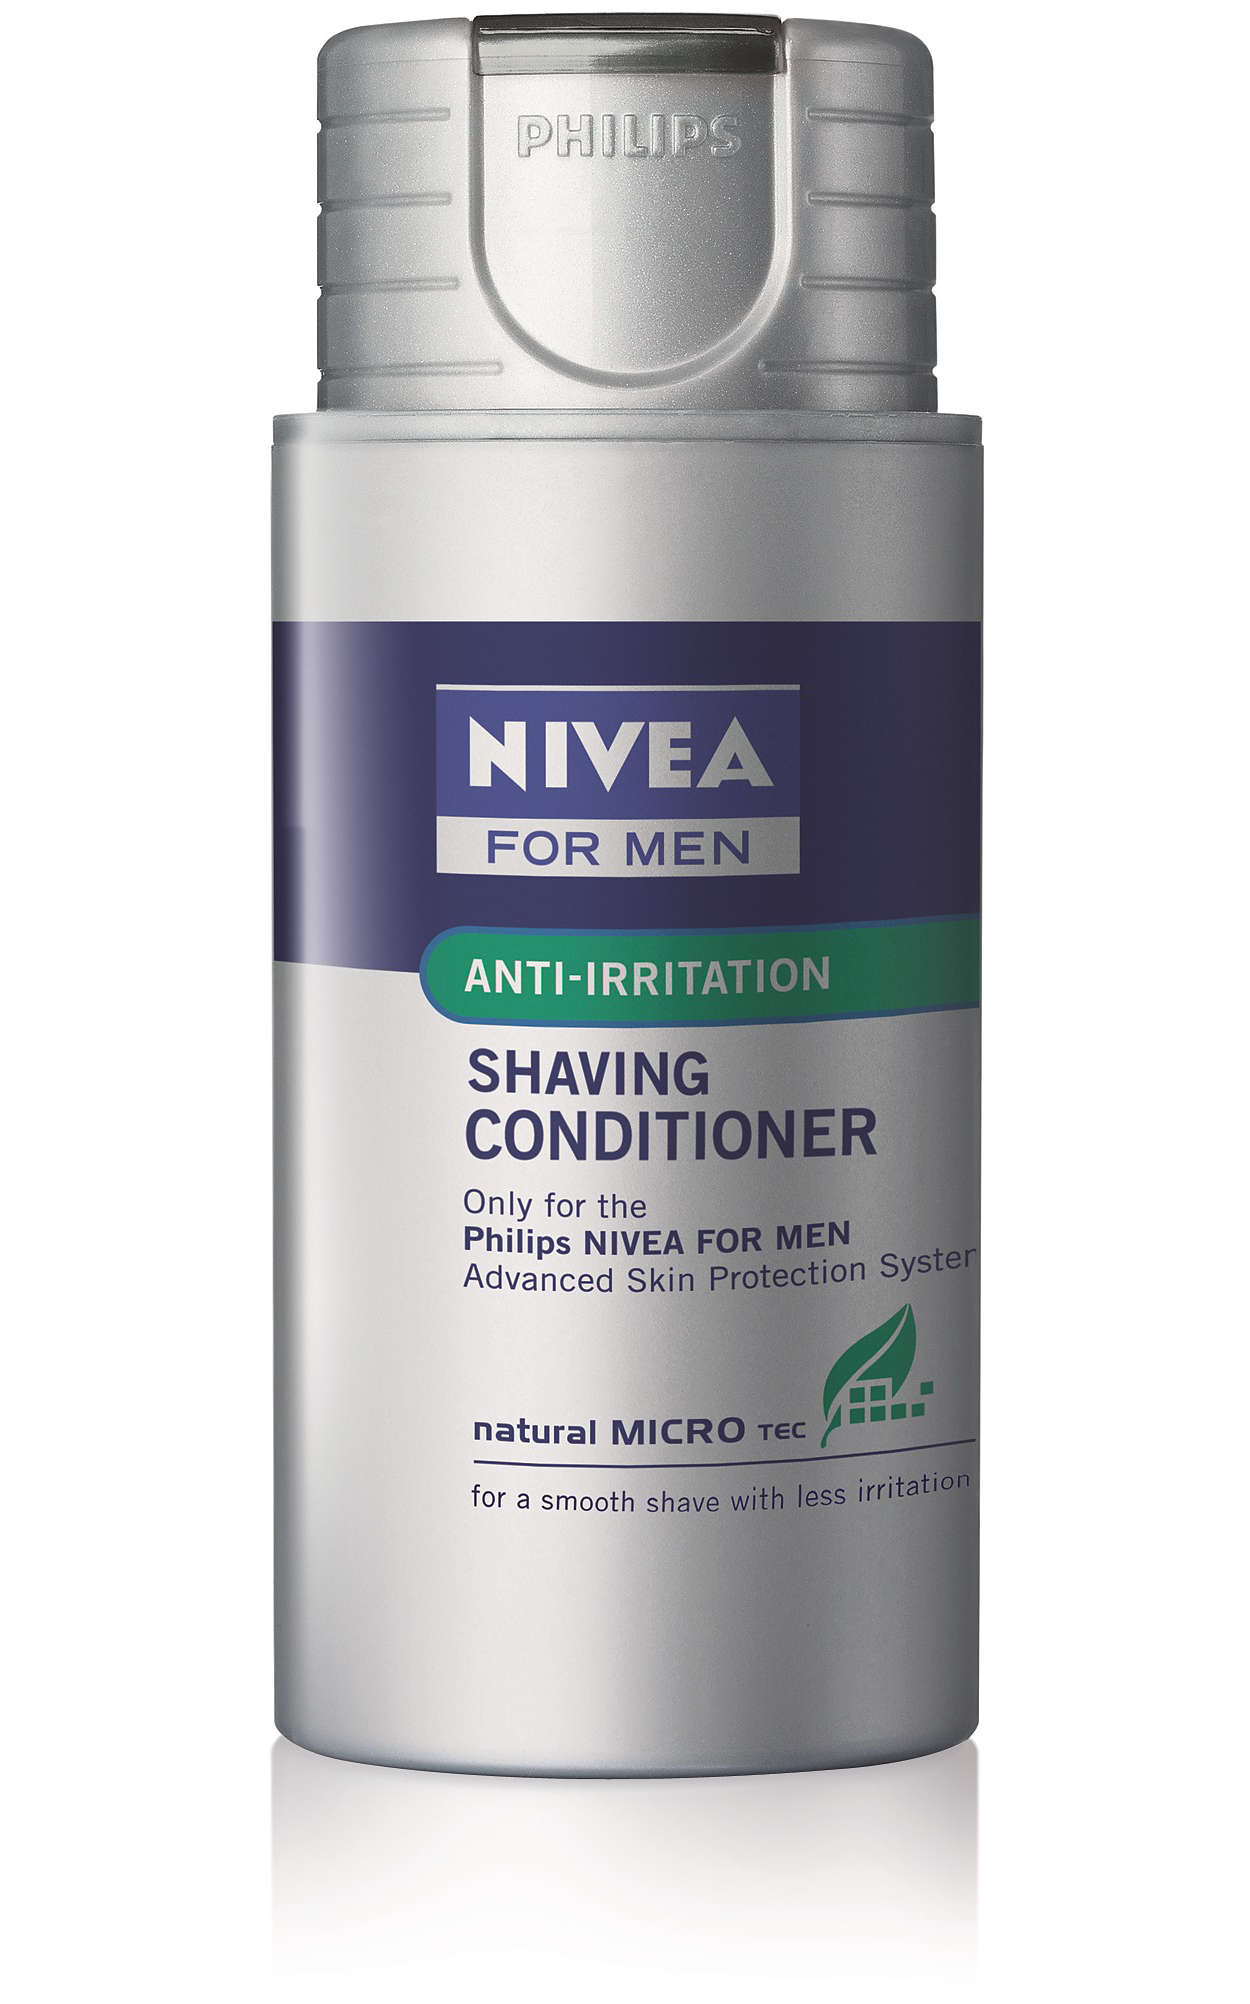 Moisturizing shaving conditioner